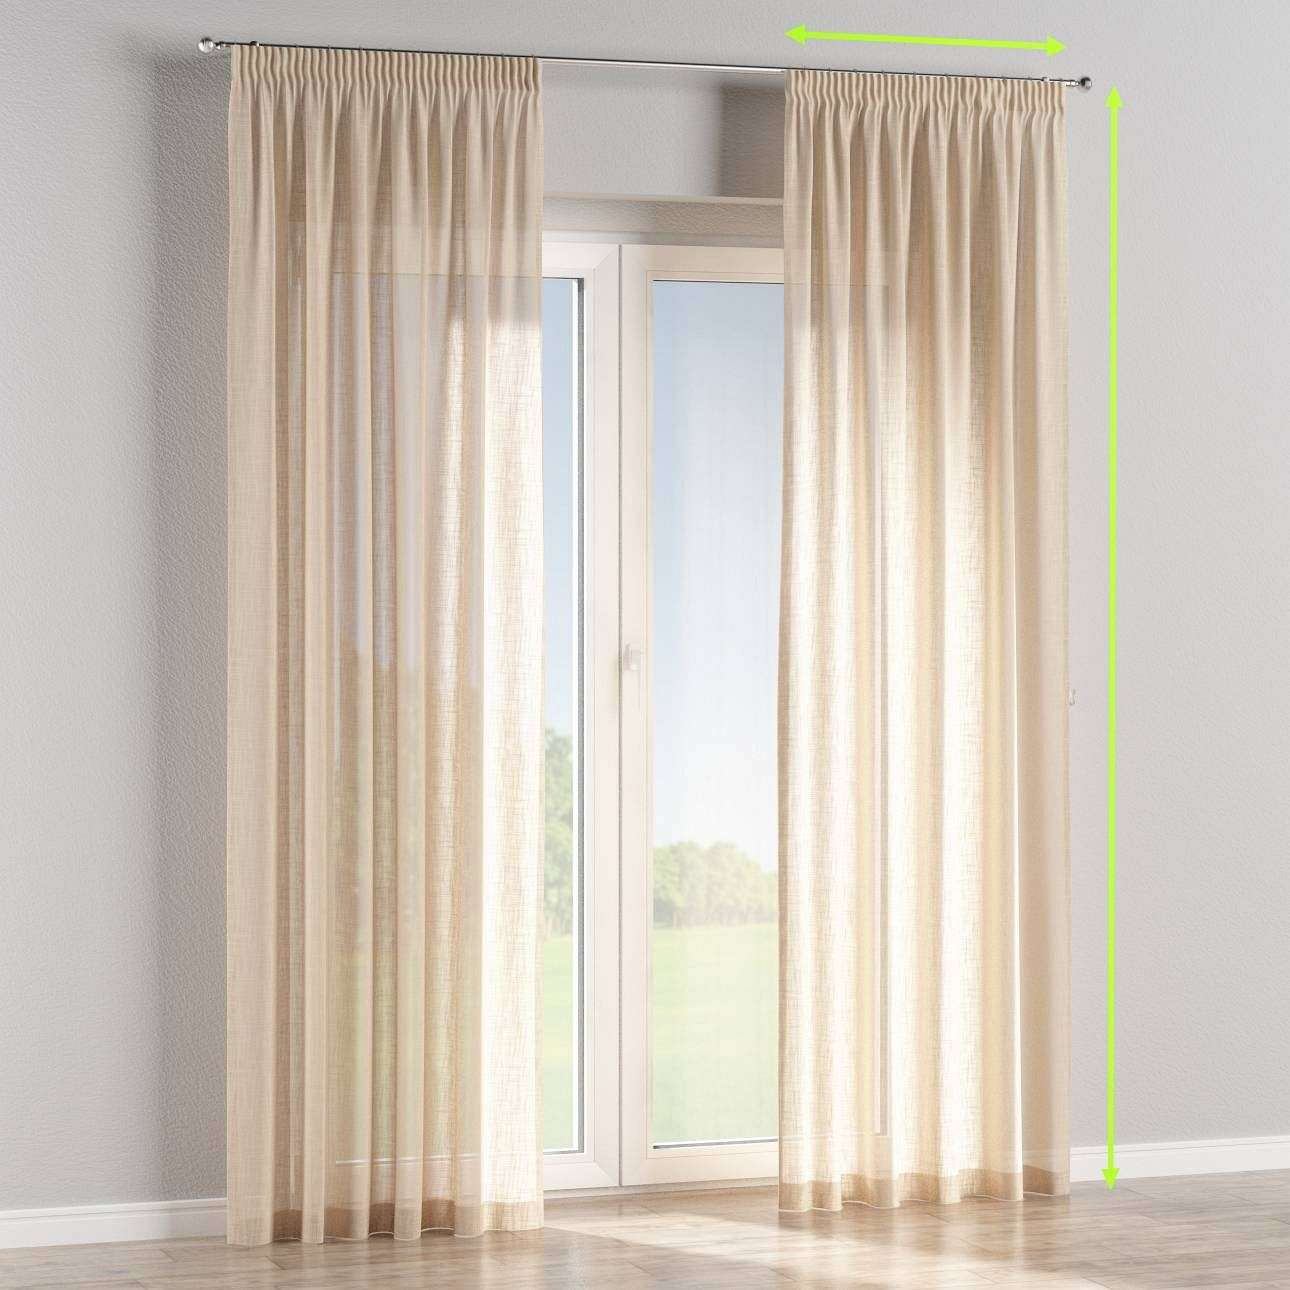 Pencil pleat curtains in collection Romantica, fabric: 128-01